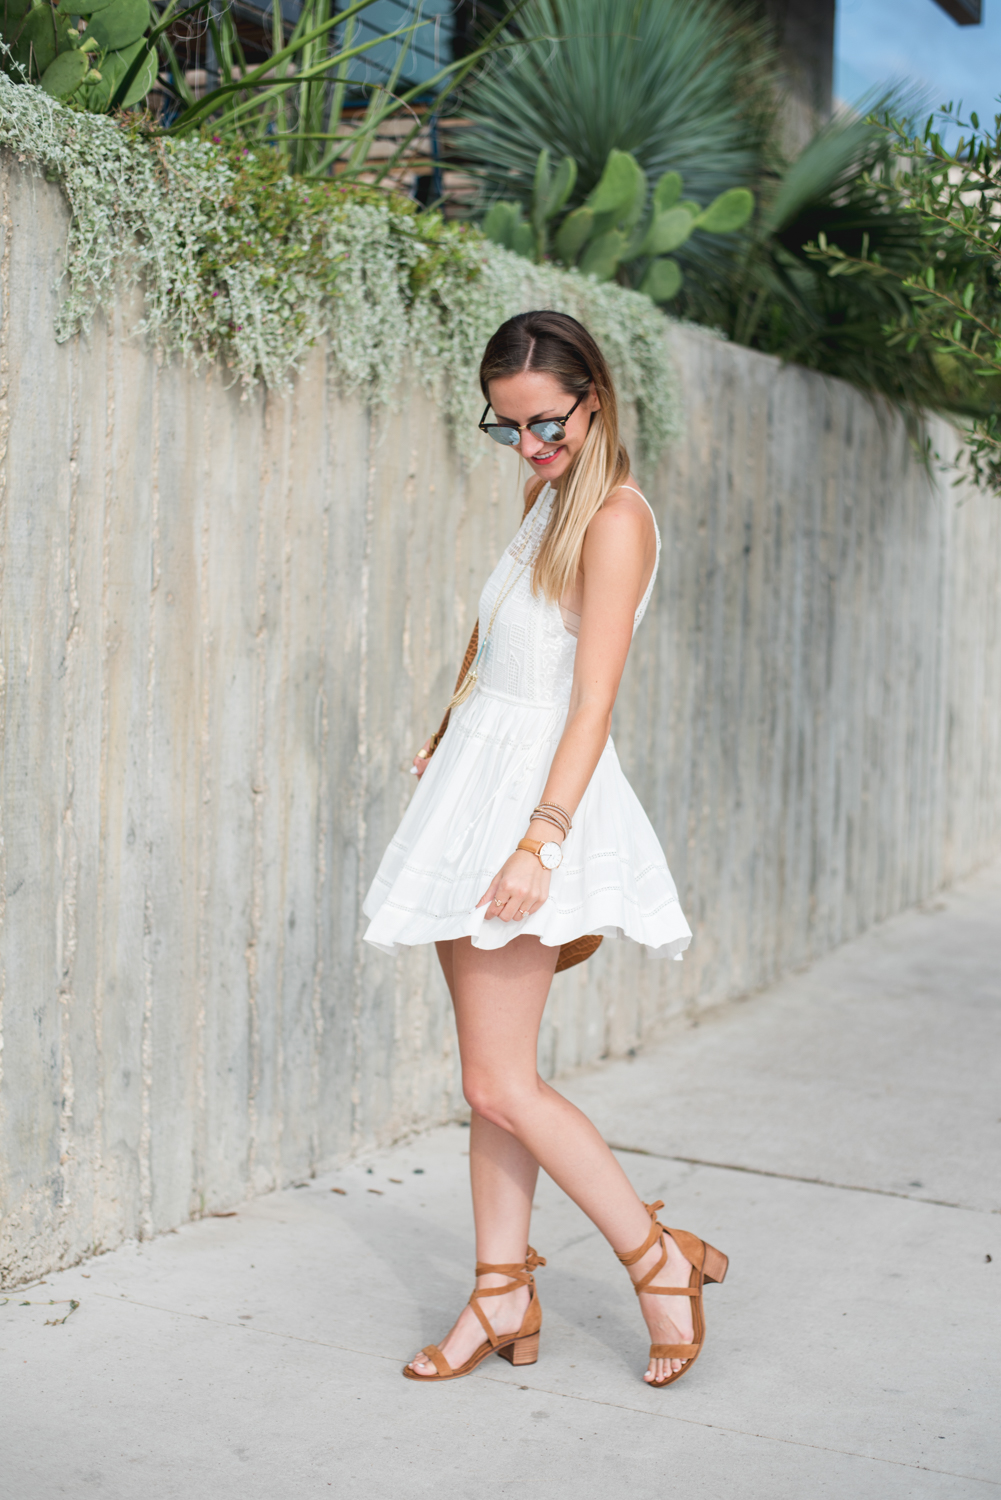 livvyland-blog-olivia-watson-austin-texas-fashion-blogger-free-people-flowy-white-high-neck-crochet-dress-tassel-south-lamar-kathryn-frazer-photography-boho-festival-outfit-3